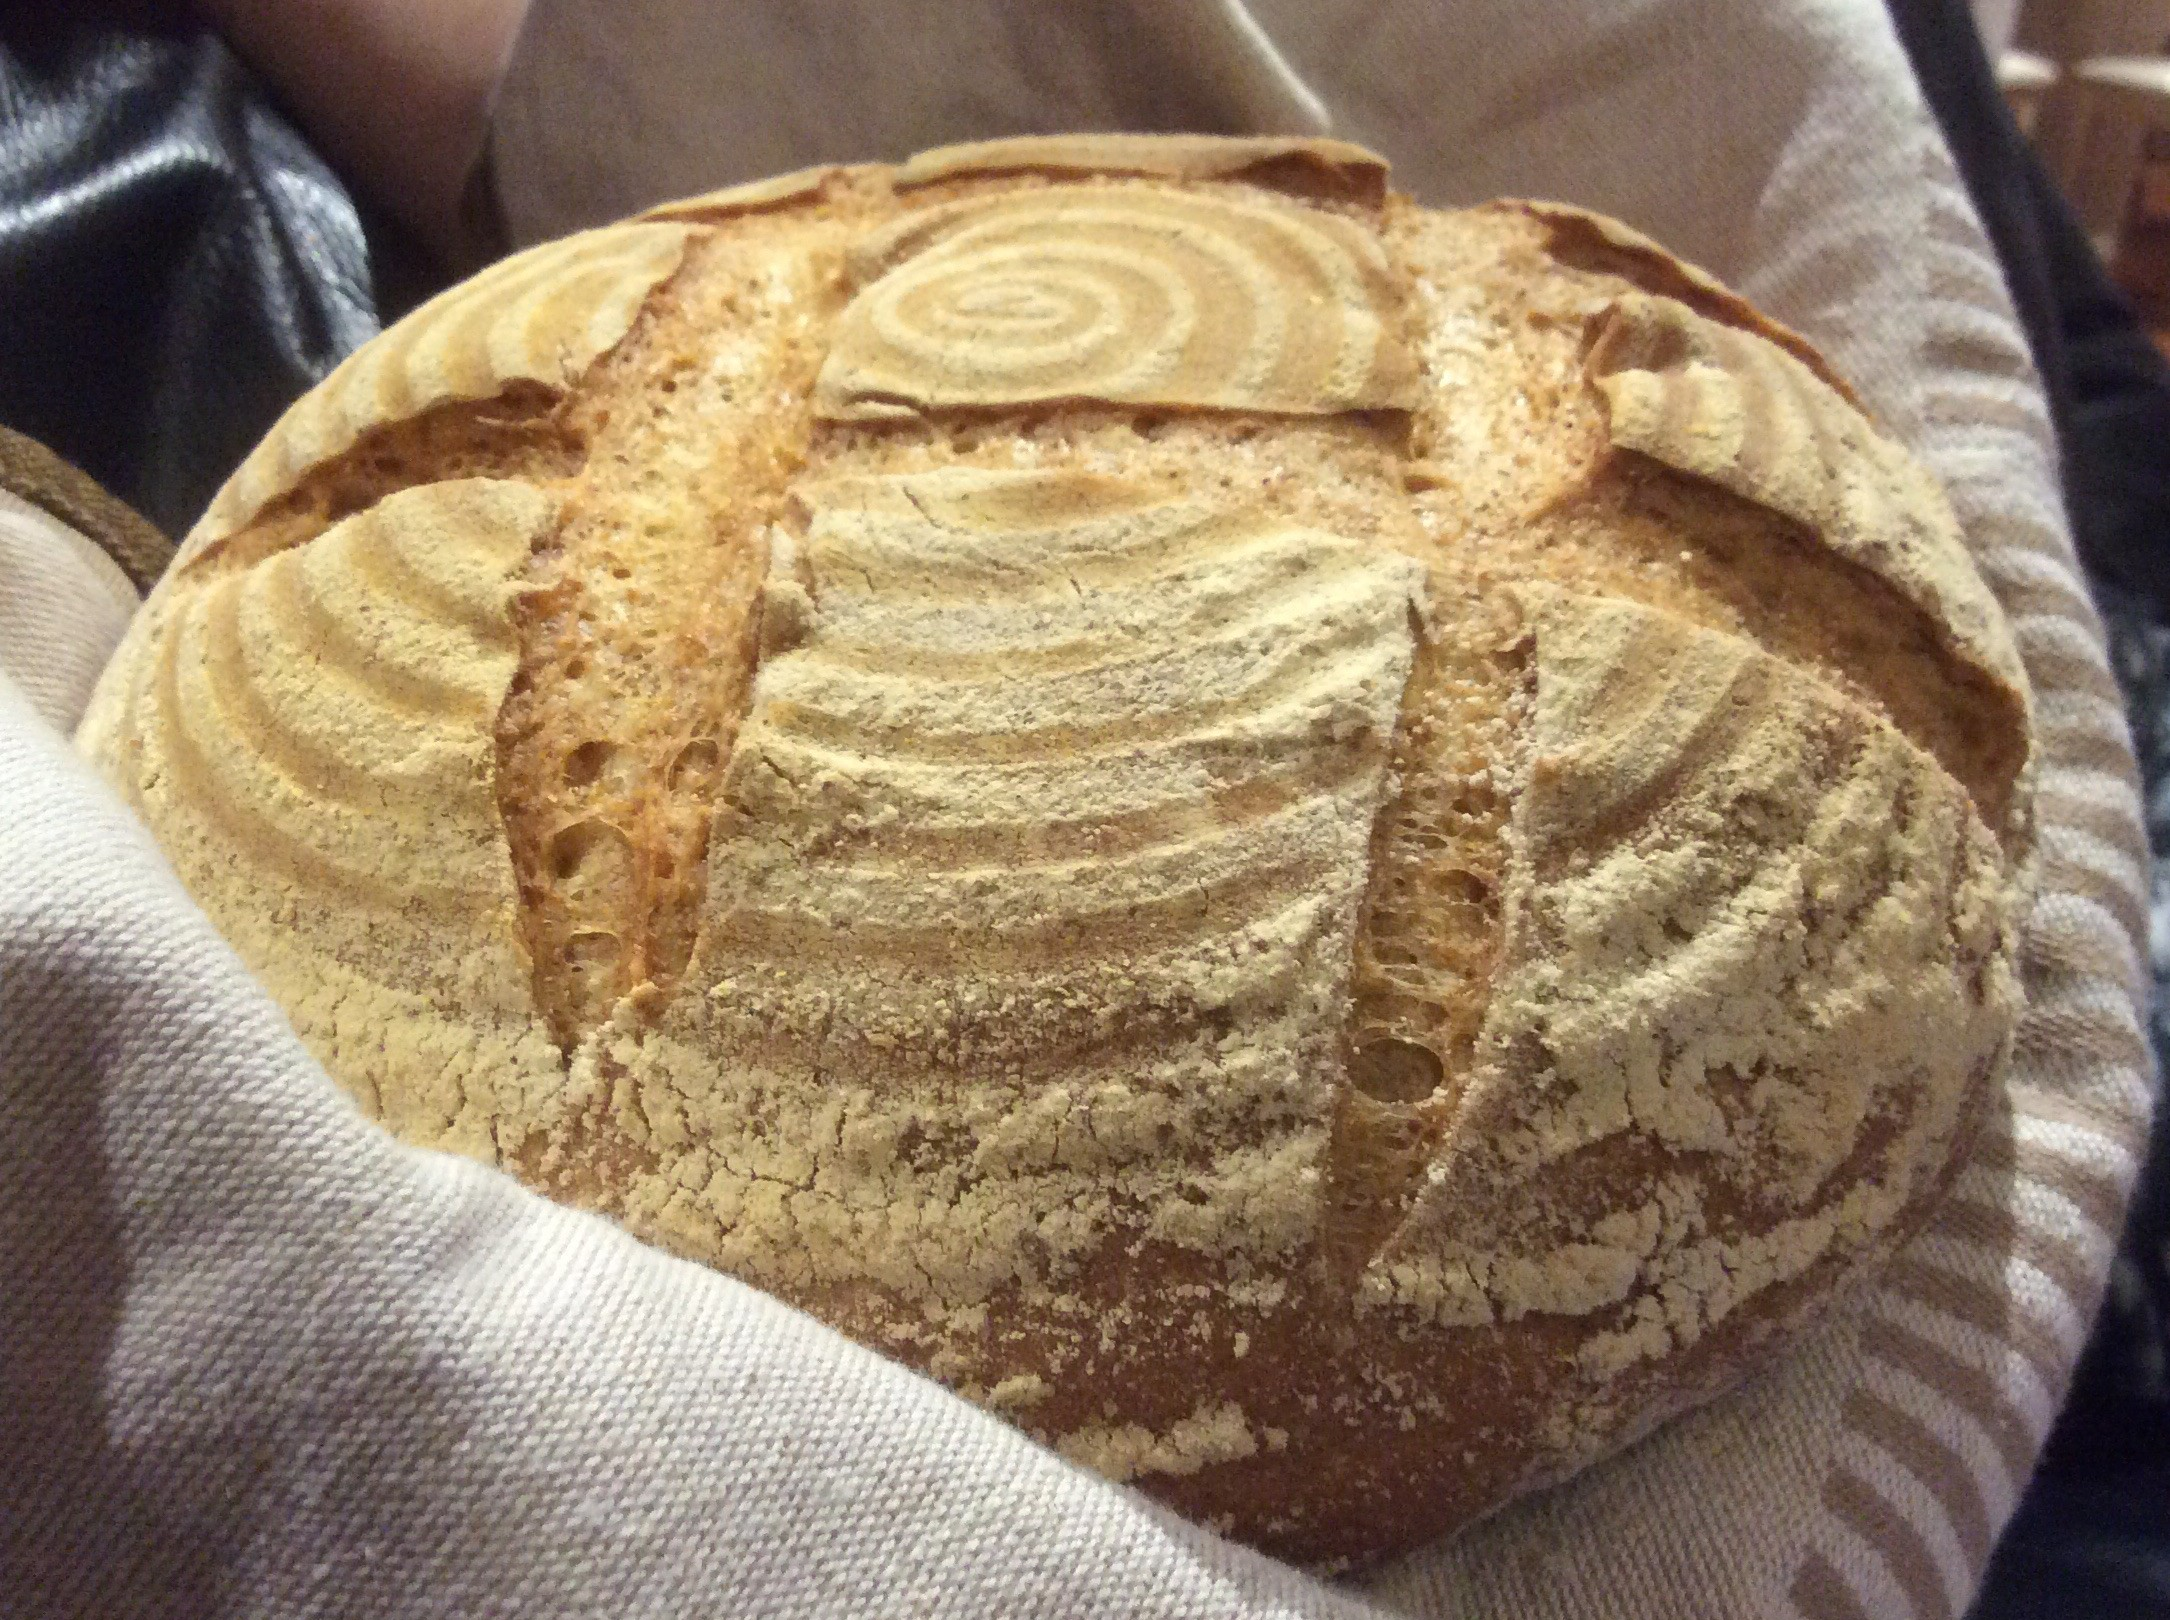 Sourdough rye and wholemeal boule